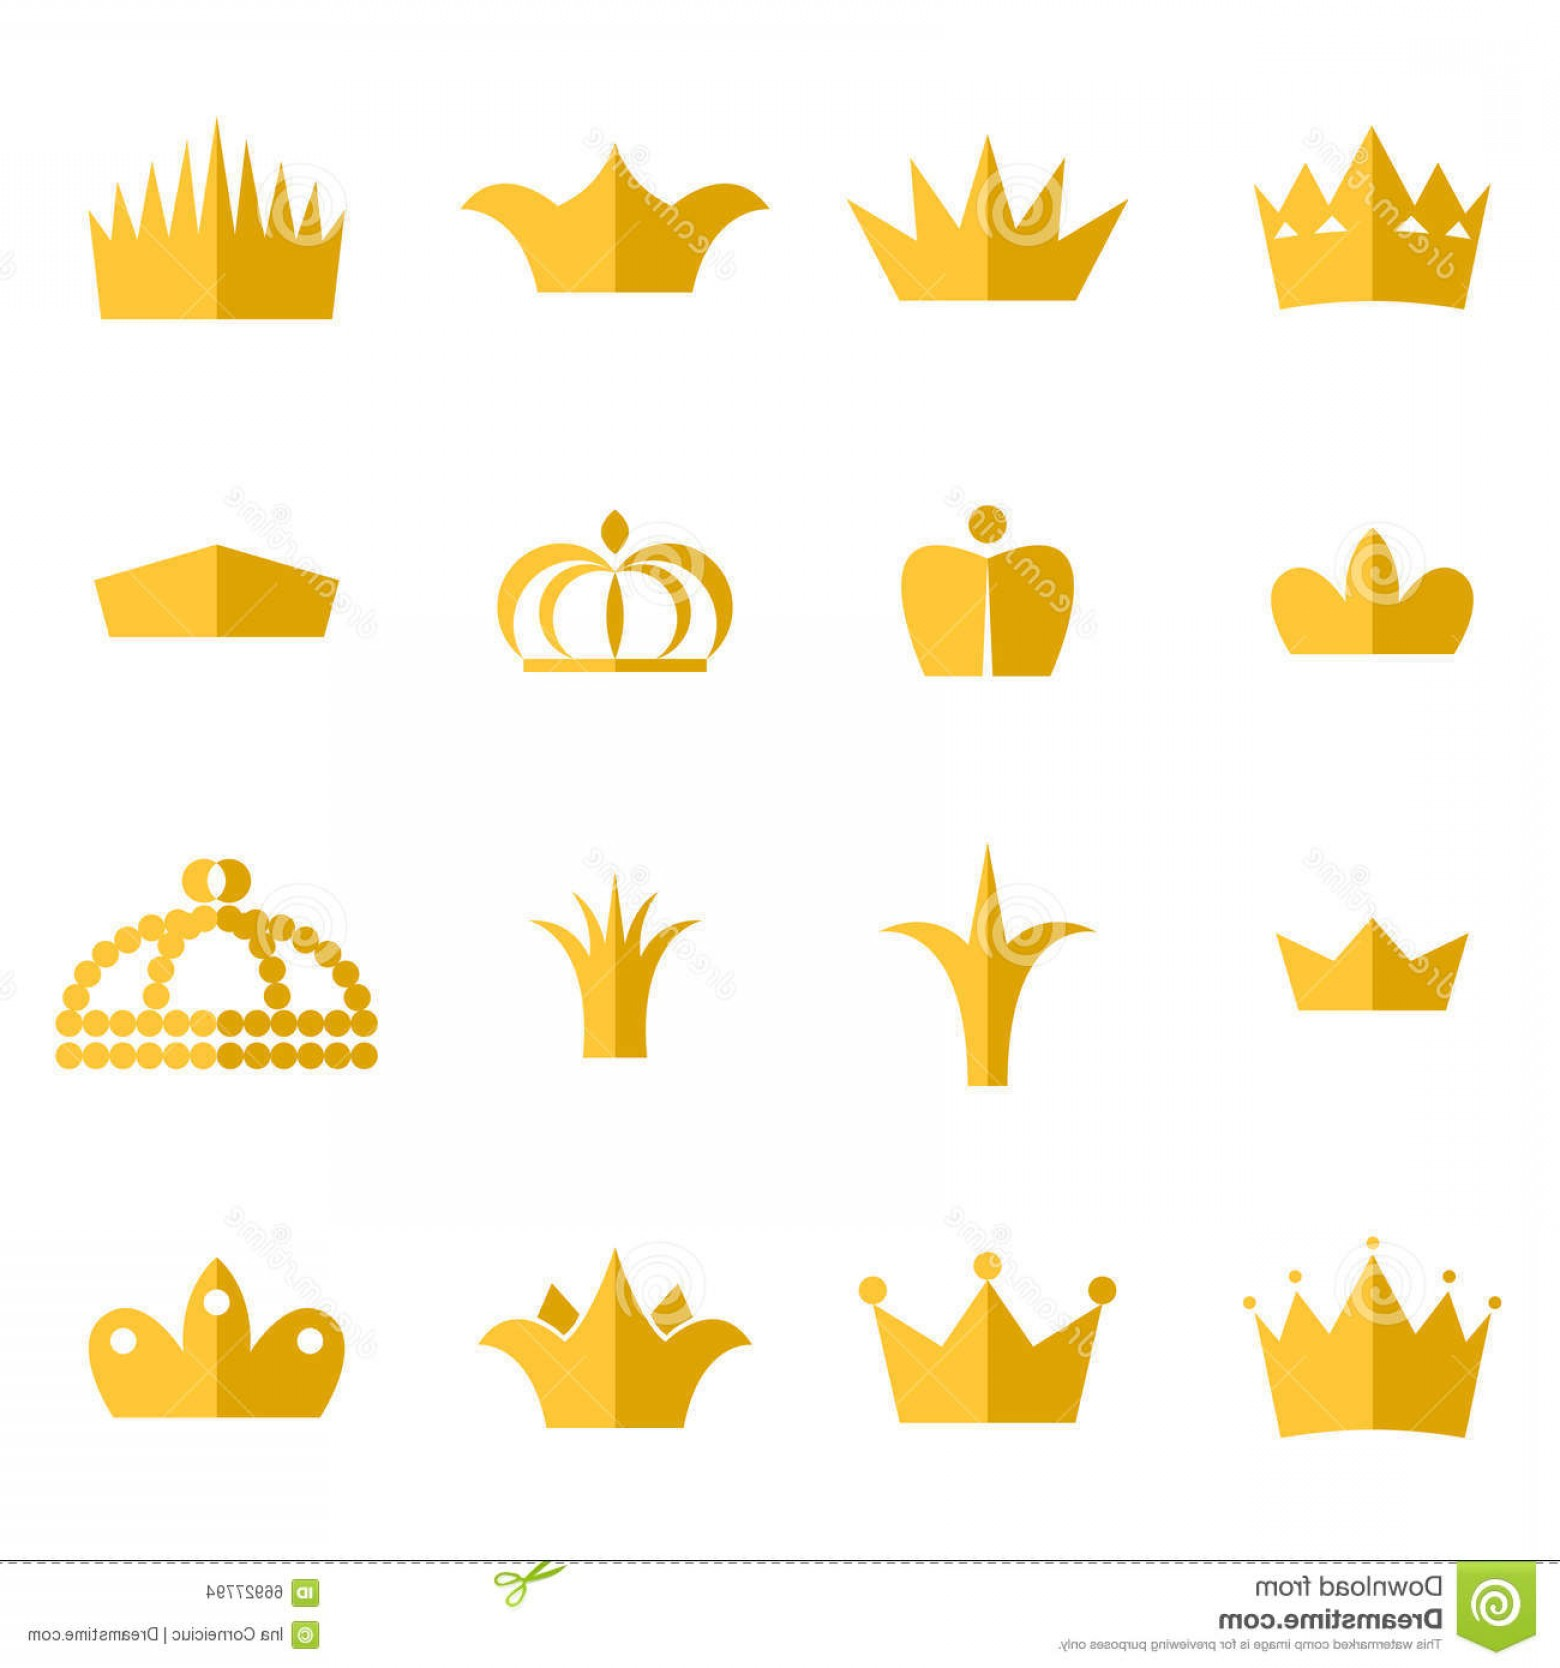 Crown Vector Clip Art: Stock Illustration Gold Crown Clip Art Vector Set King Queen Crowns Flat Style Icons Image